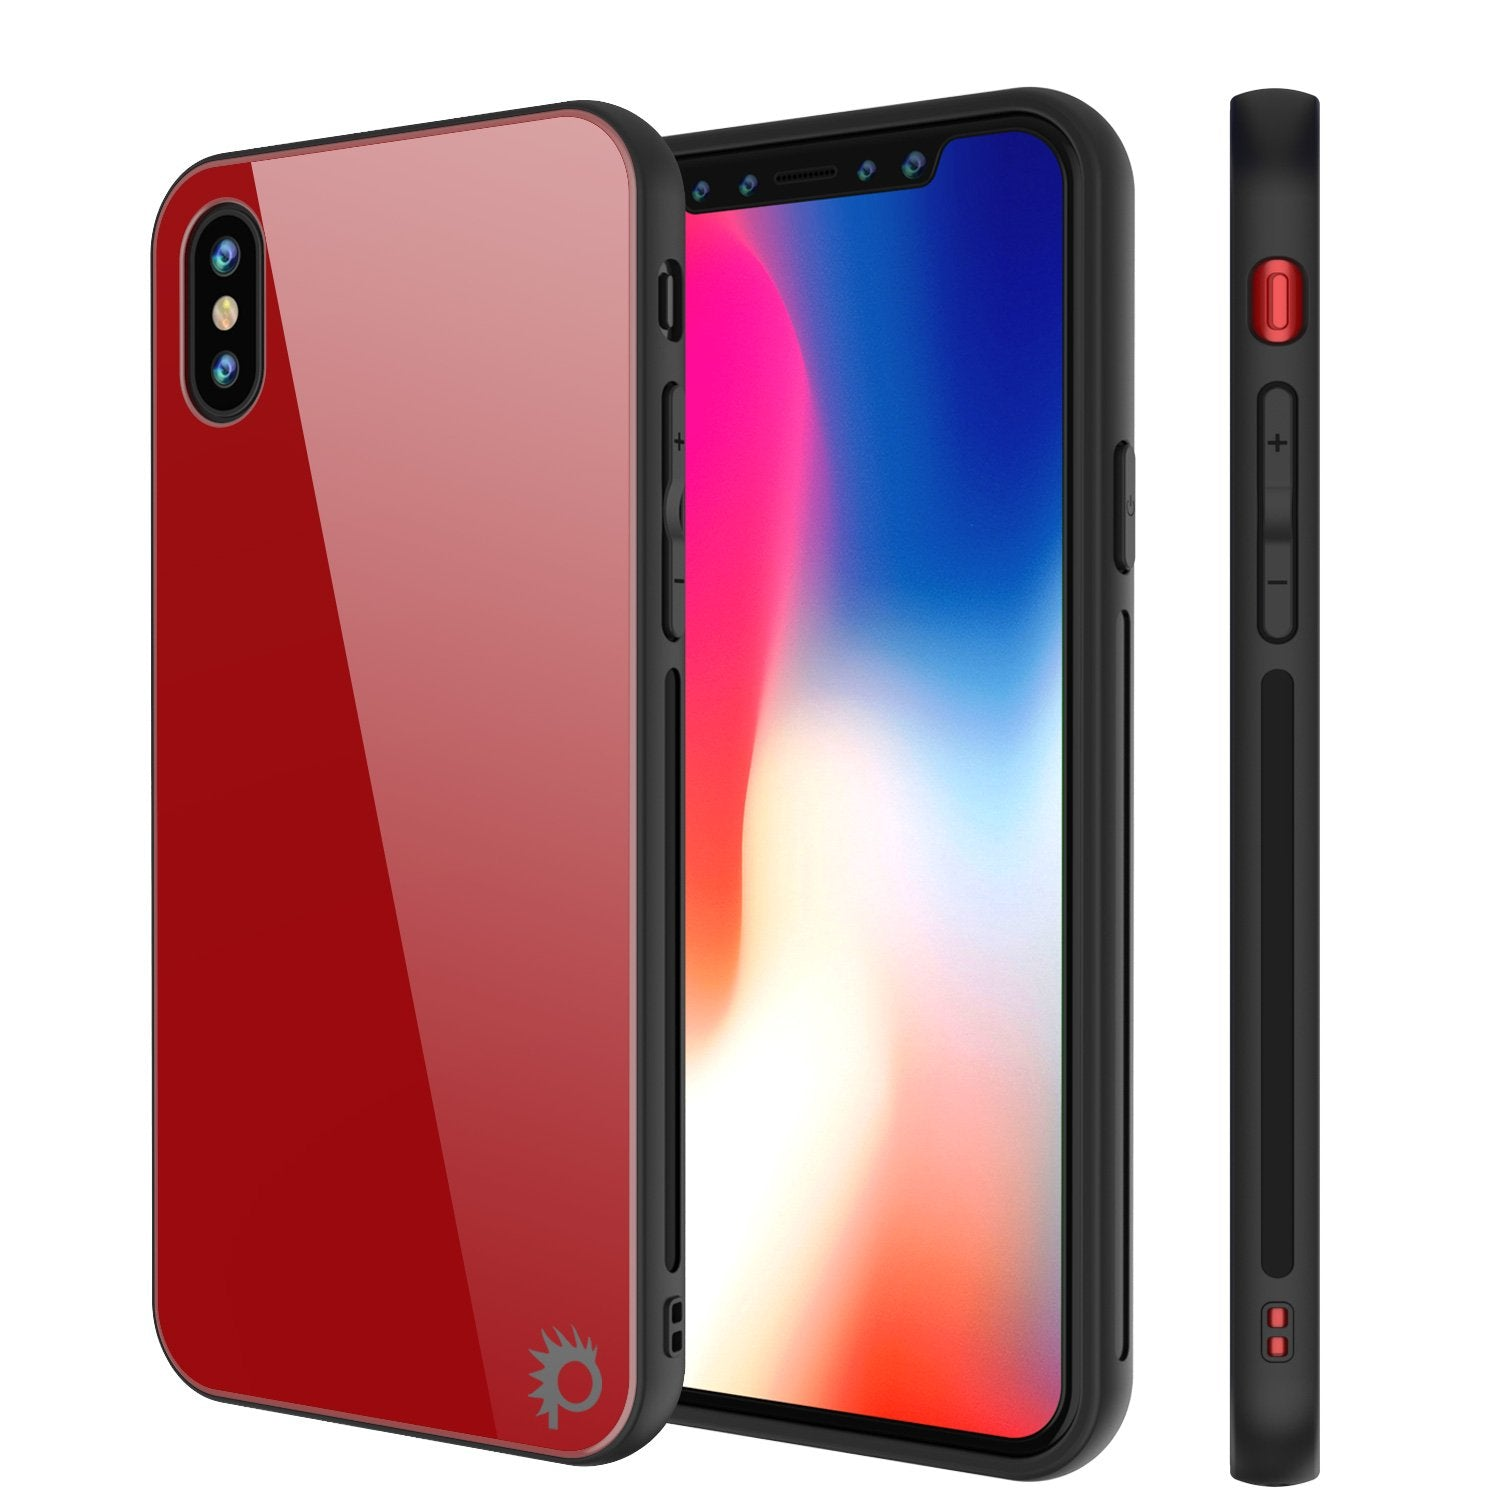 iPhone X Case, Punkcase GlassShield Ultra Thin Protective 9H Full Body Tempered Glass Cover W/ Drop Protection & Non Slip Grip for Apple iPhone 10 [Red]